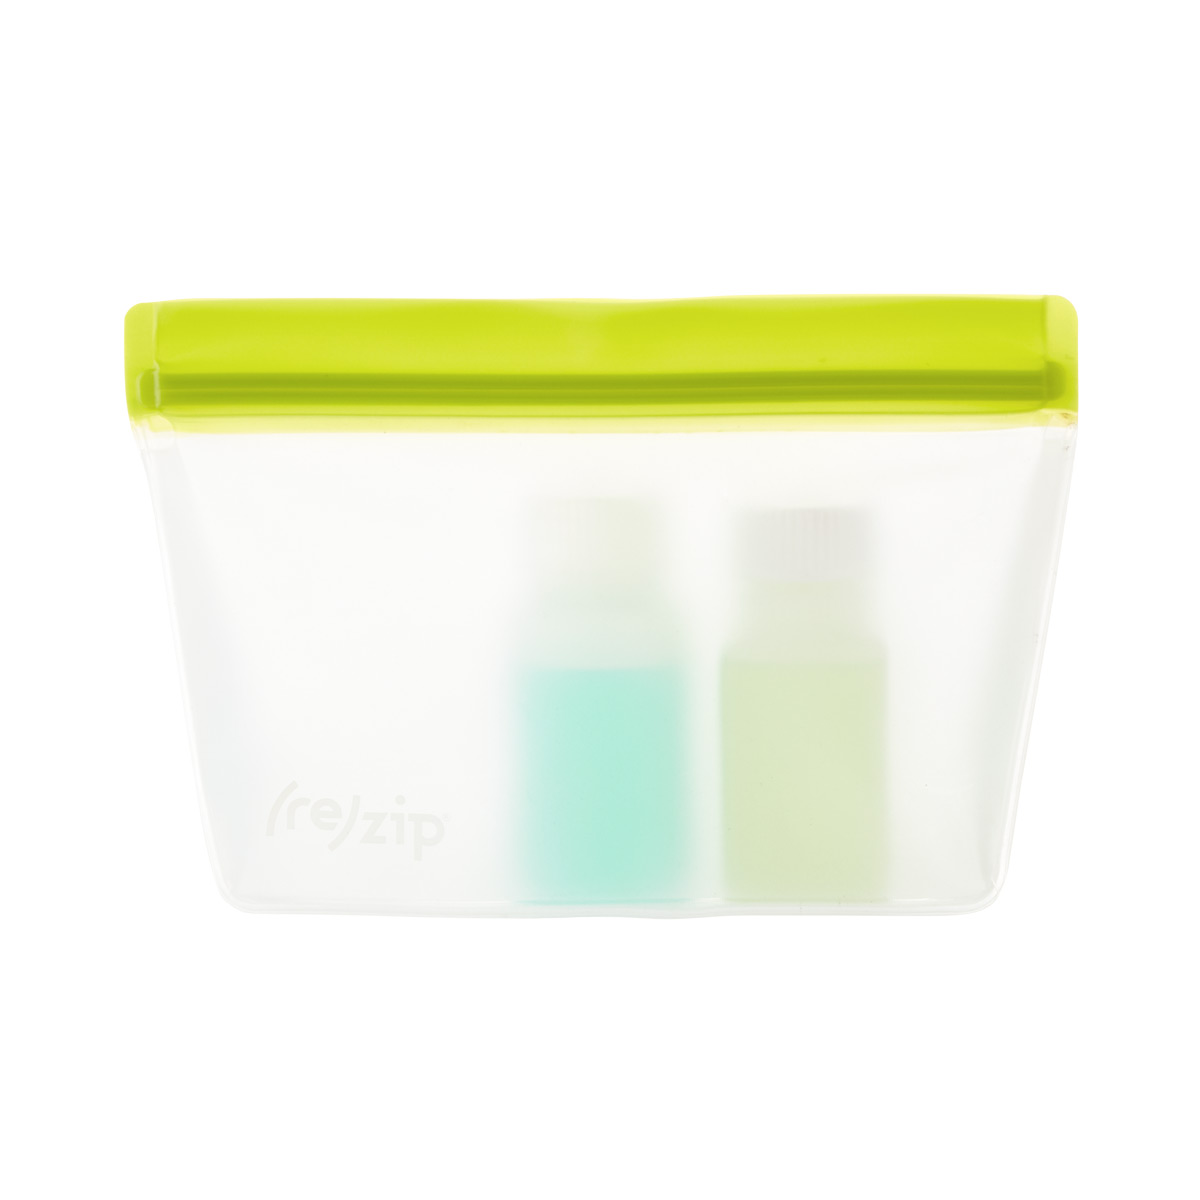 Re-Zip Reusable 2 Cup Green Storage Bag